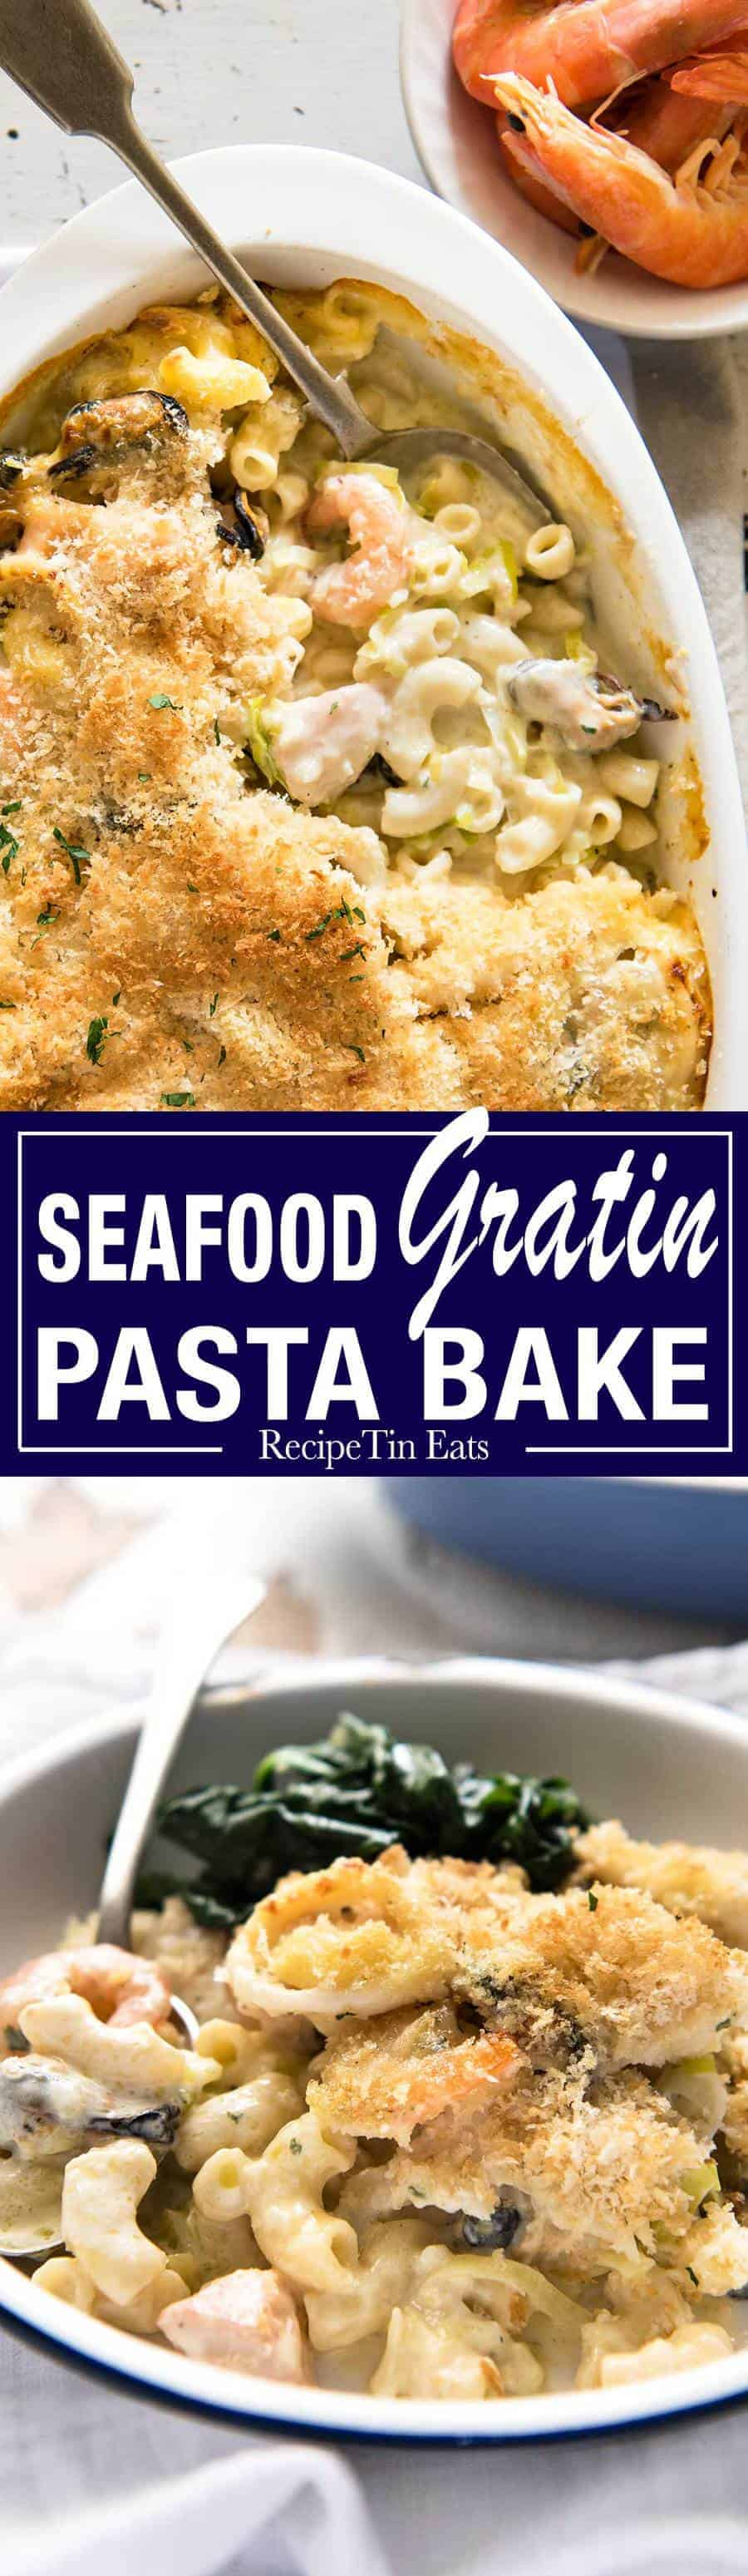 Seafood Gratin Pasta Bake - mixed seafood (your choice!) and pasta baked in a creamy sauce with a crunchy breadcrumb and cheese topping! www.recipetineats.com